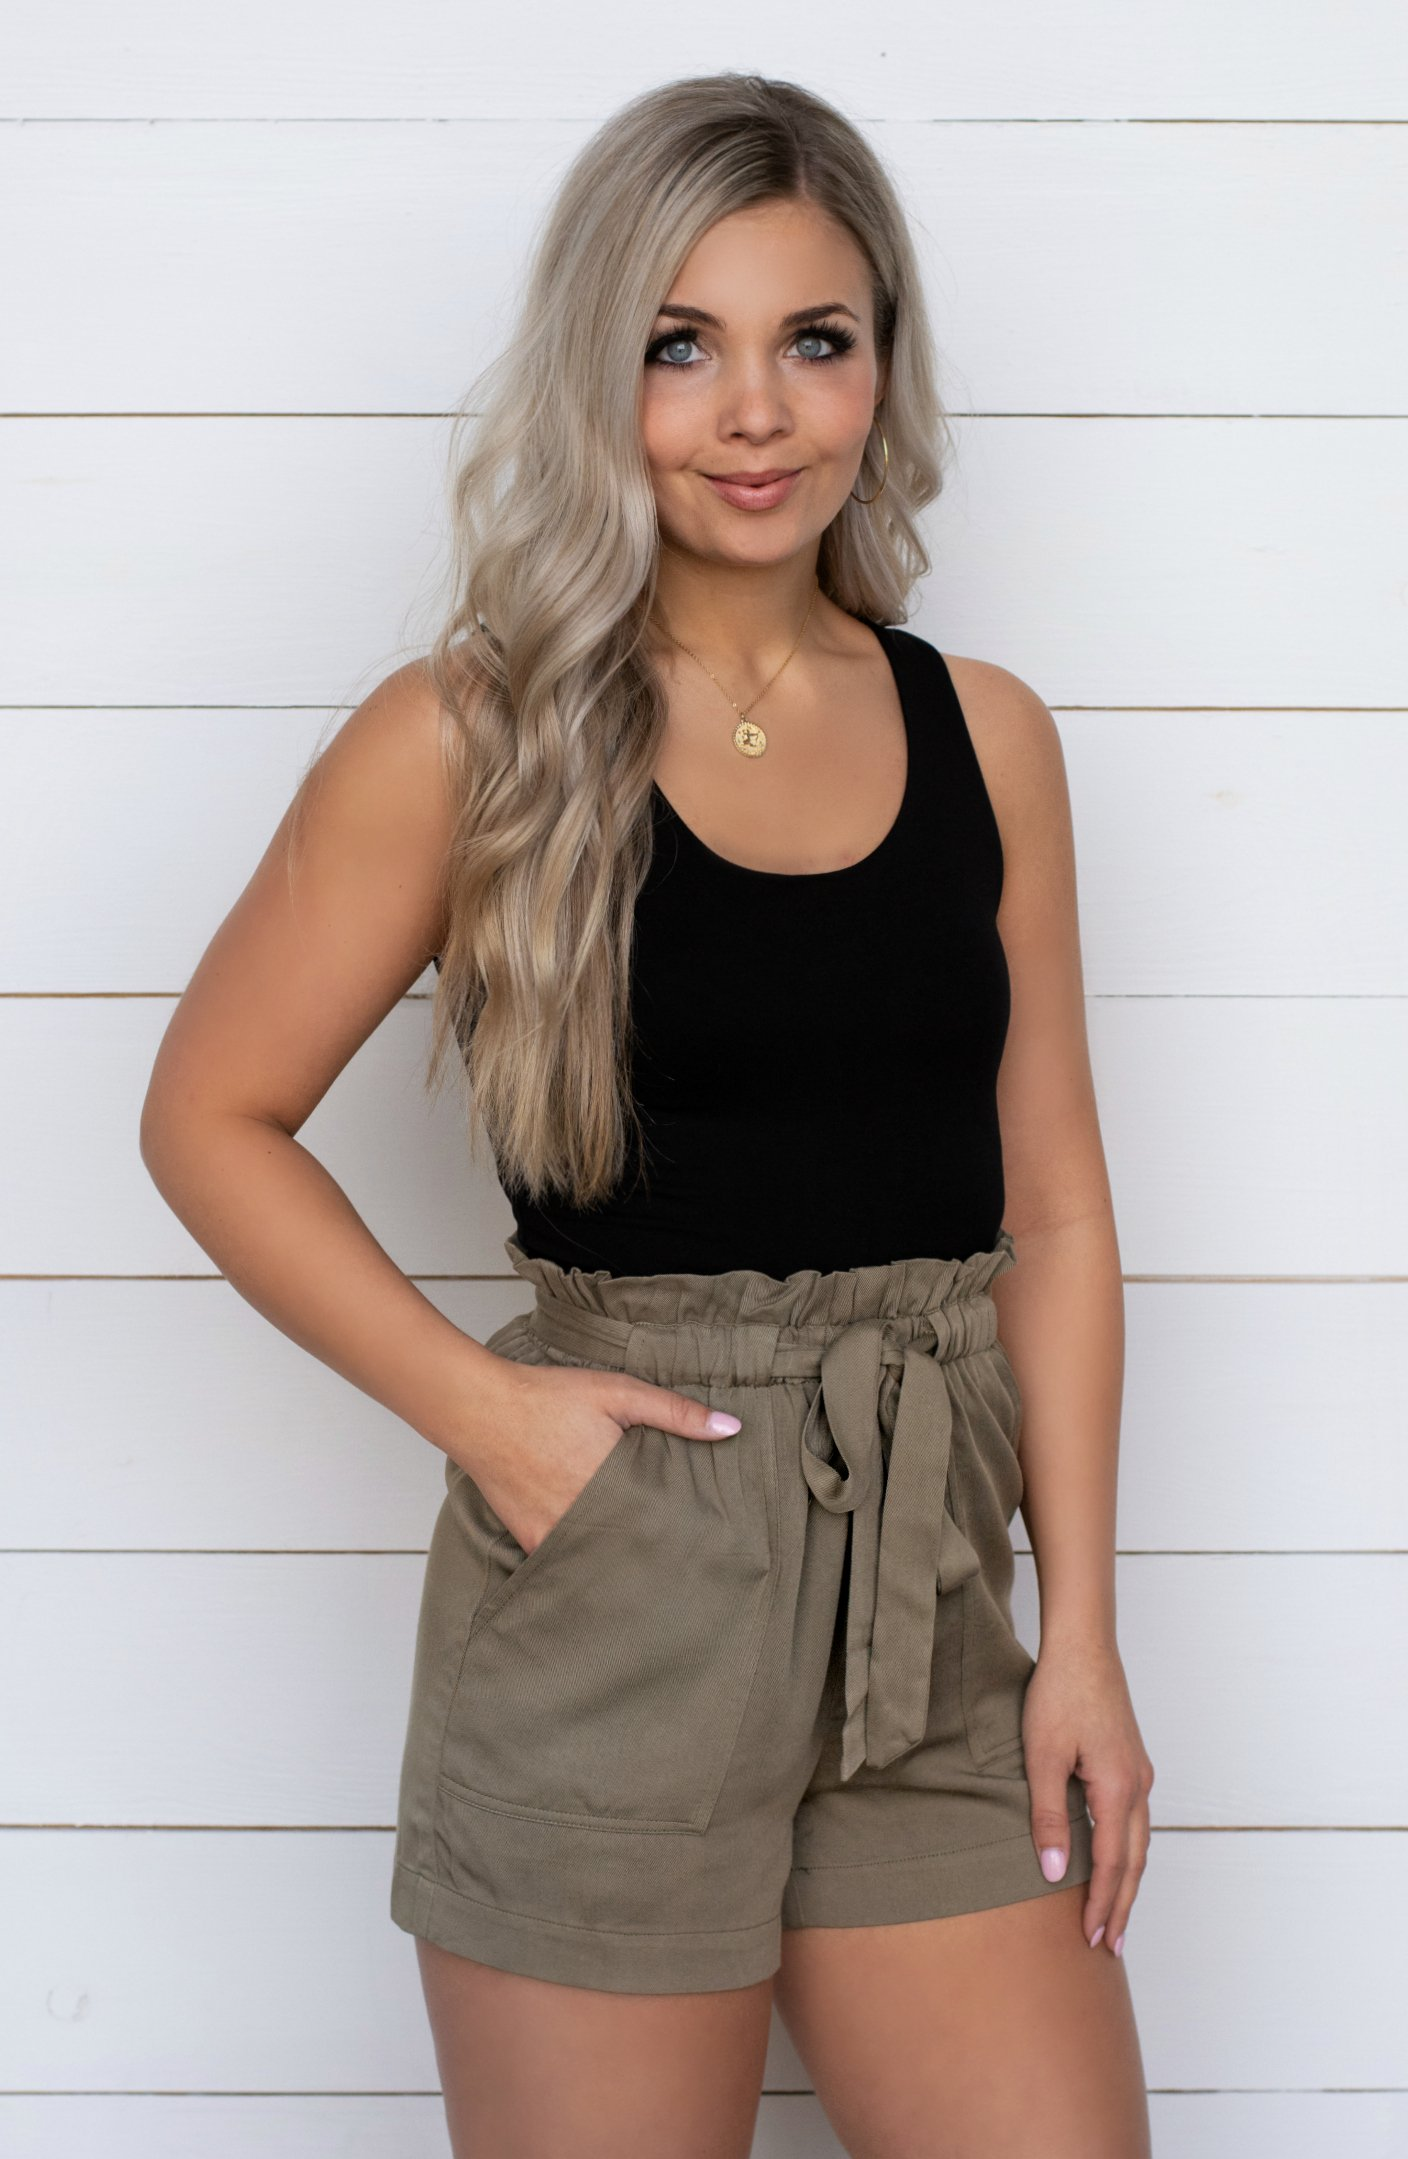 beige Paperbag Shorts Top schwarz moderner Look